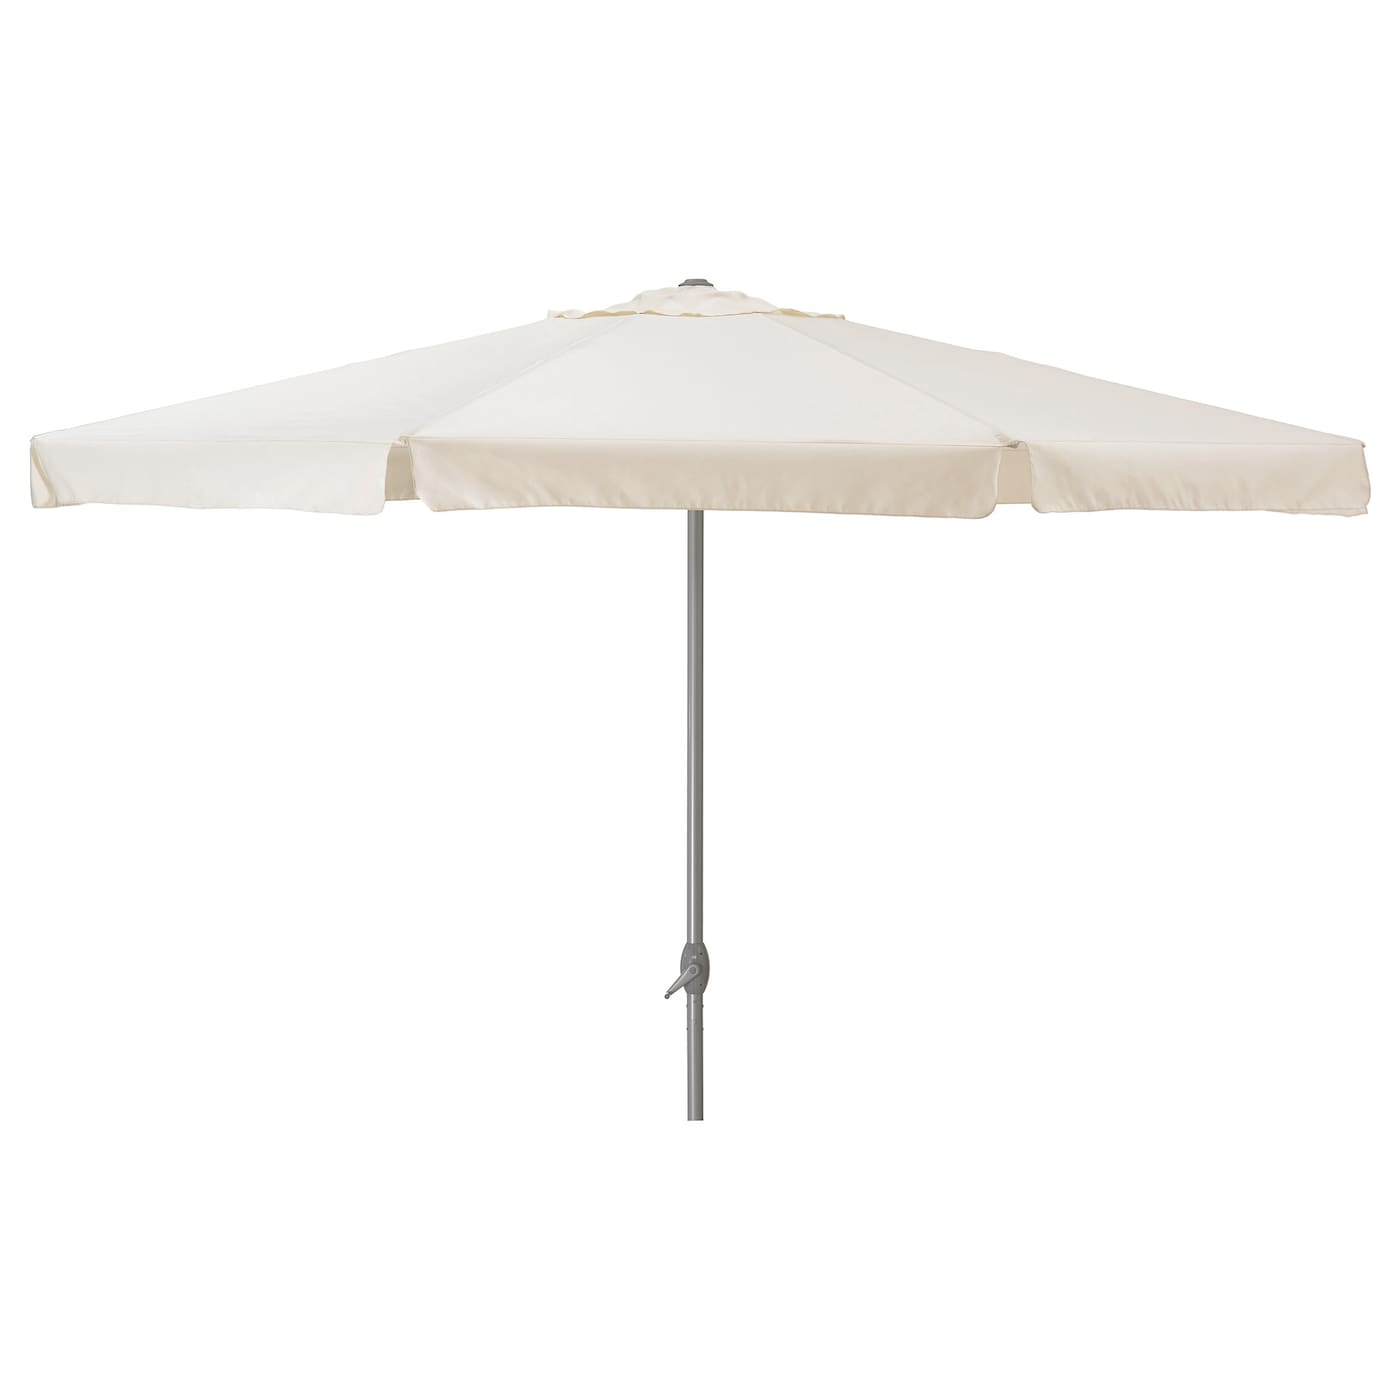 ljuster parasol beige 400 cm ikea. Black Bedroom Furniture Sets. Home Design Ideas